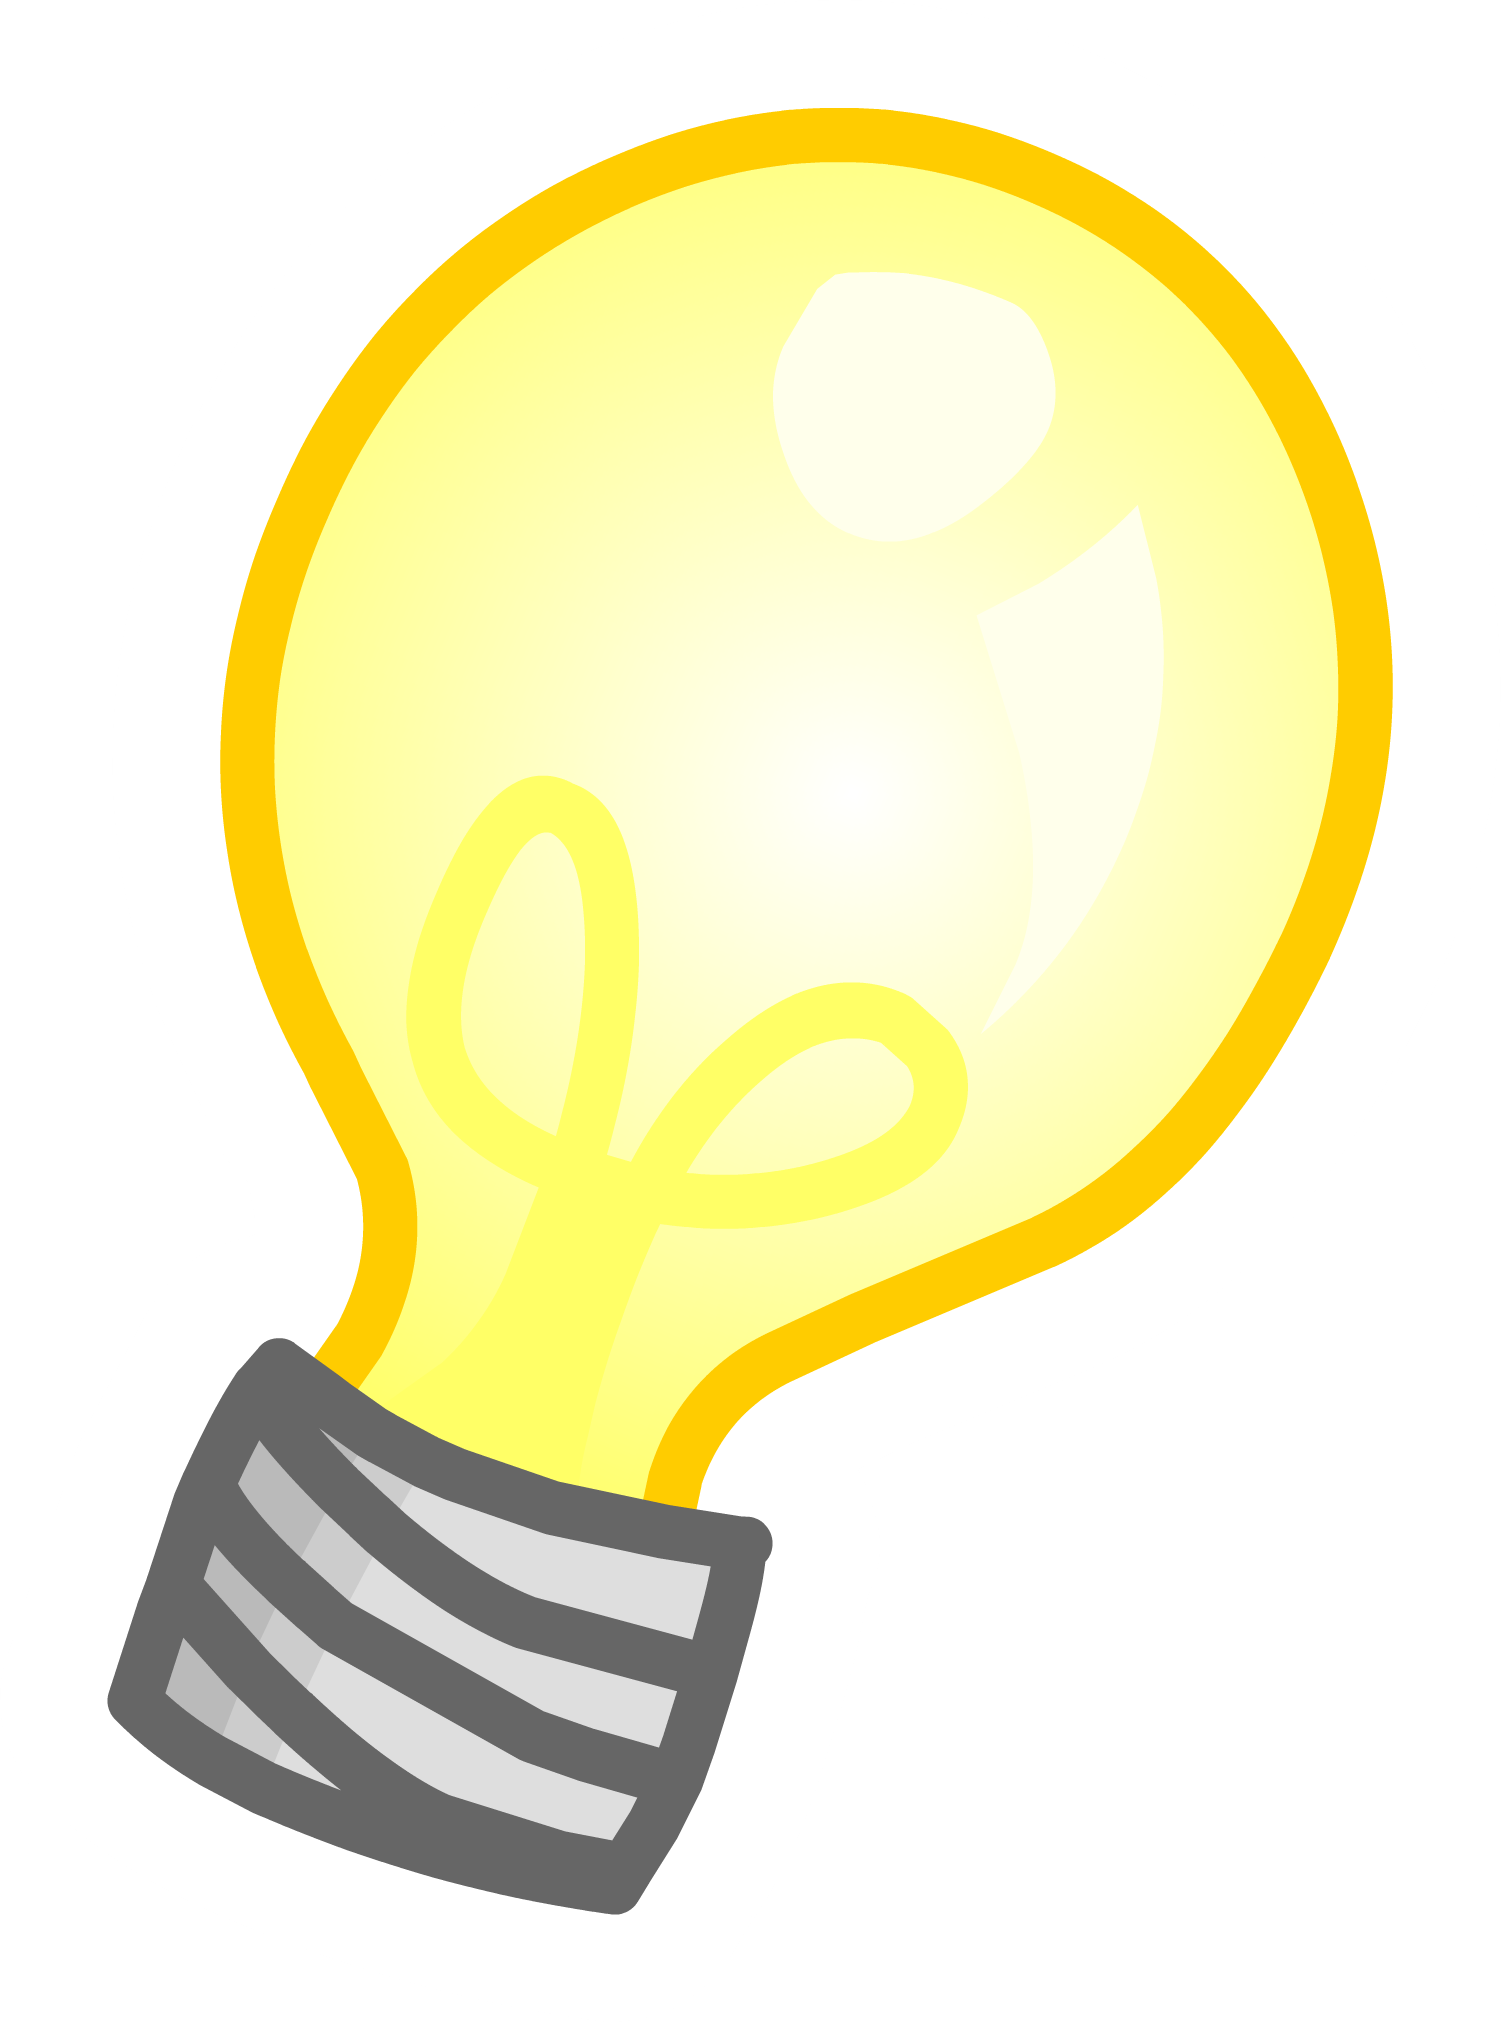 Light Bulb PNG Images.